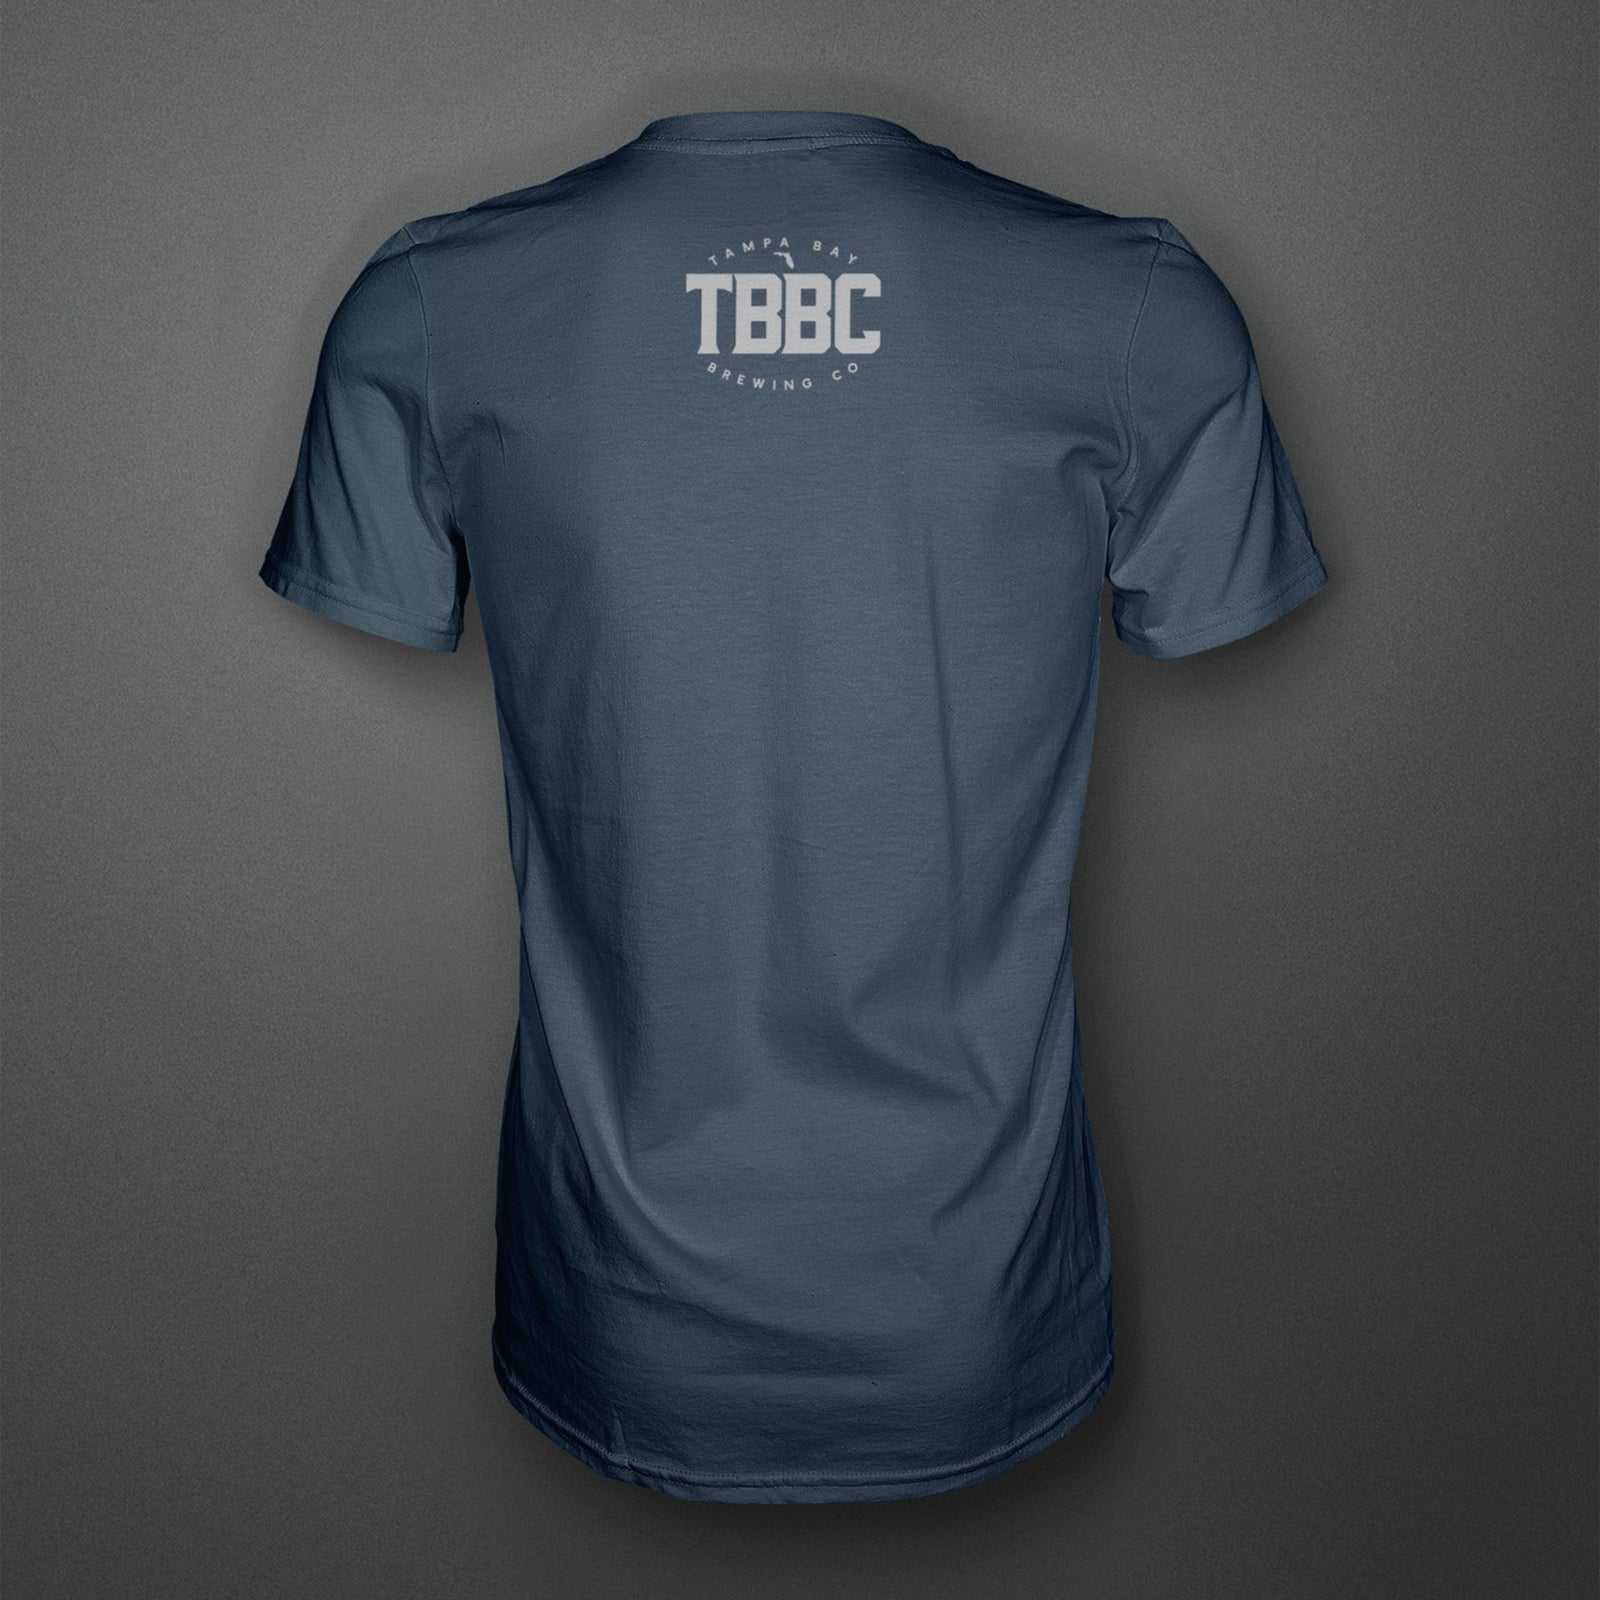 TBBC.BEER T-Shirt